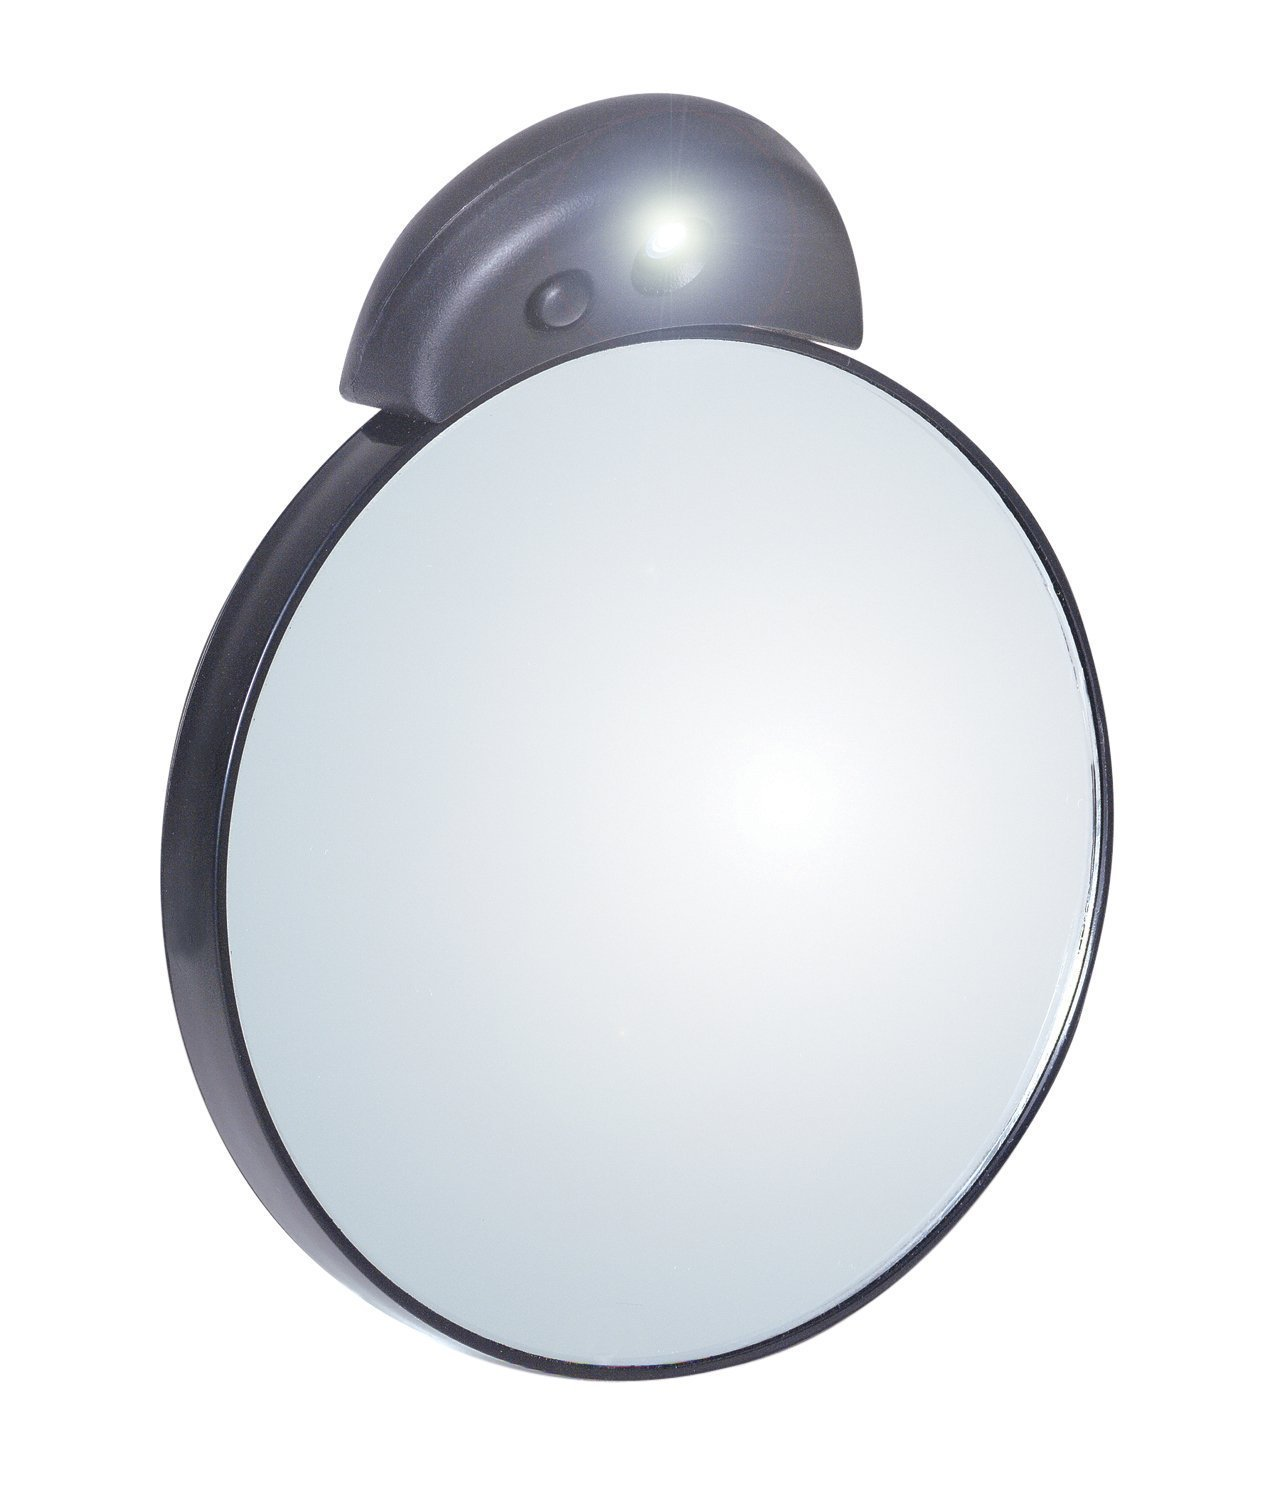 Best Lighted Makeup Mirror | Hollywood Lighted Vanity Mirror | Magnified Mirror